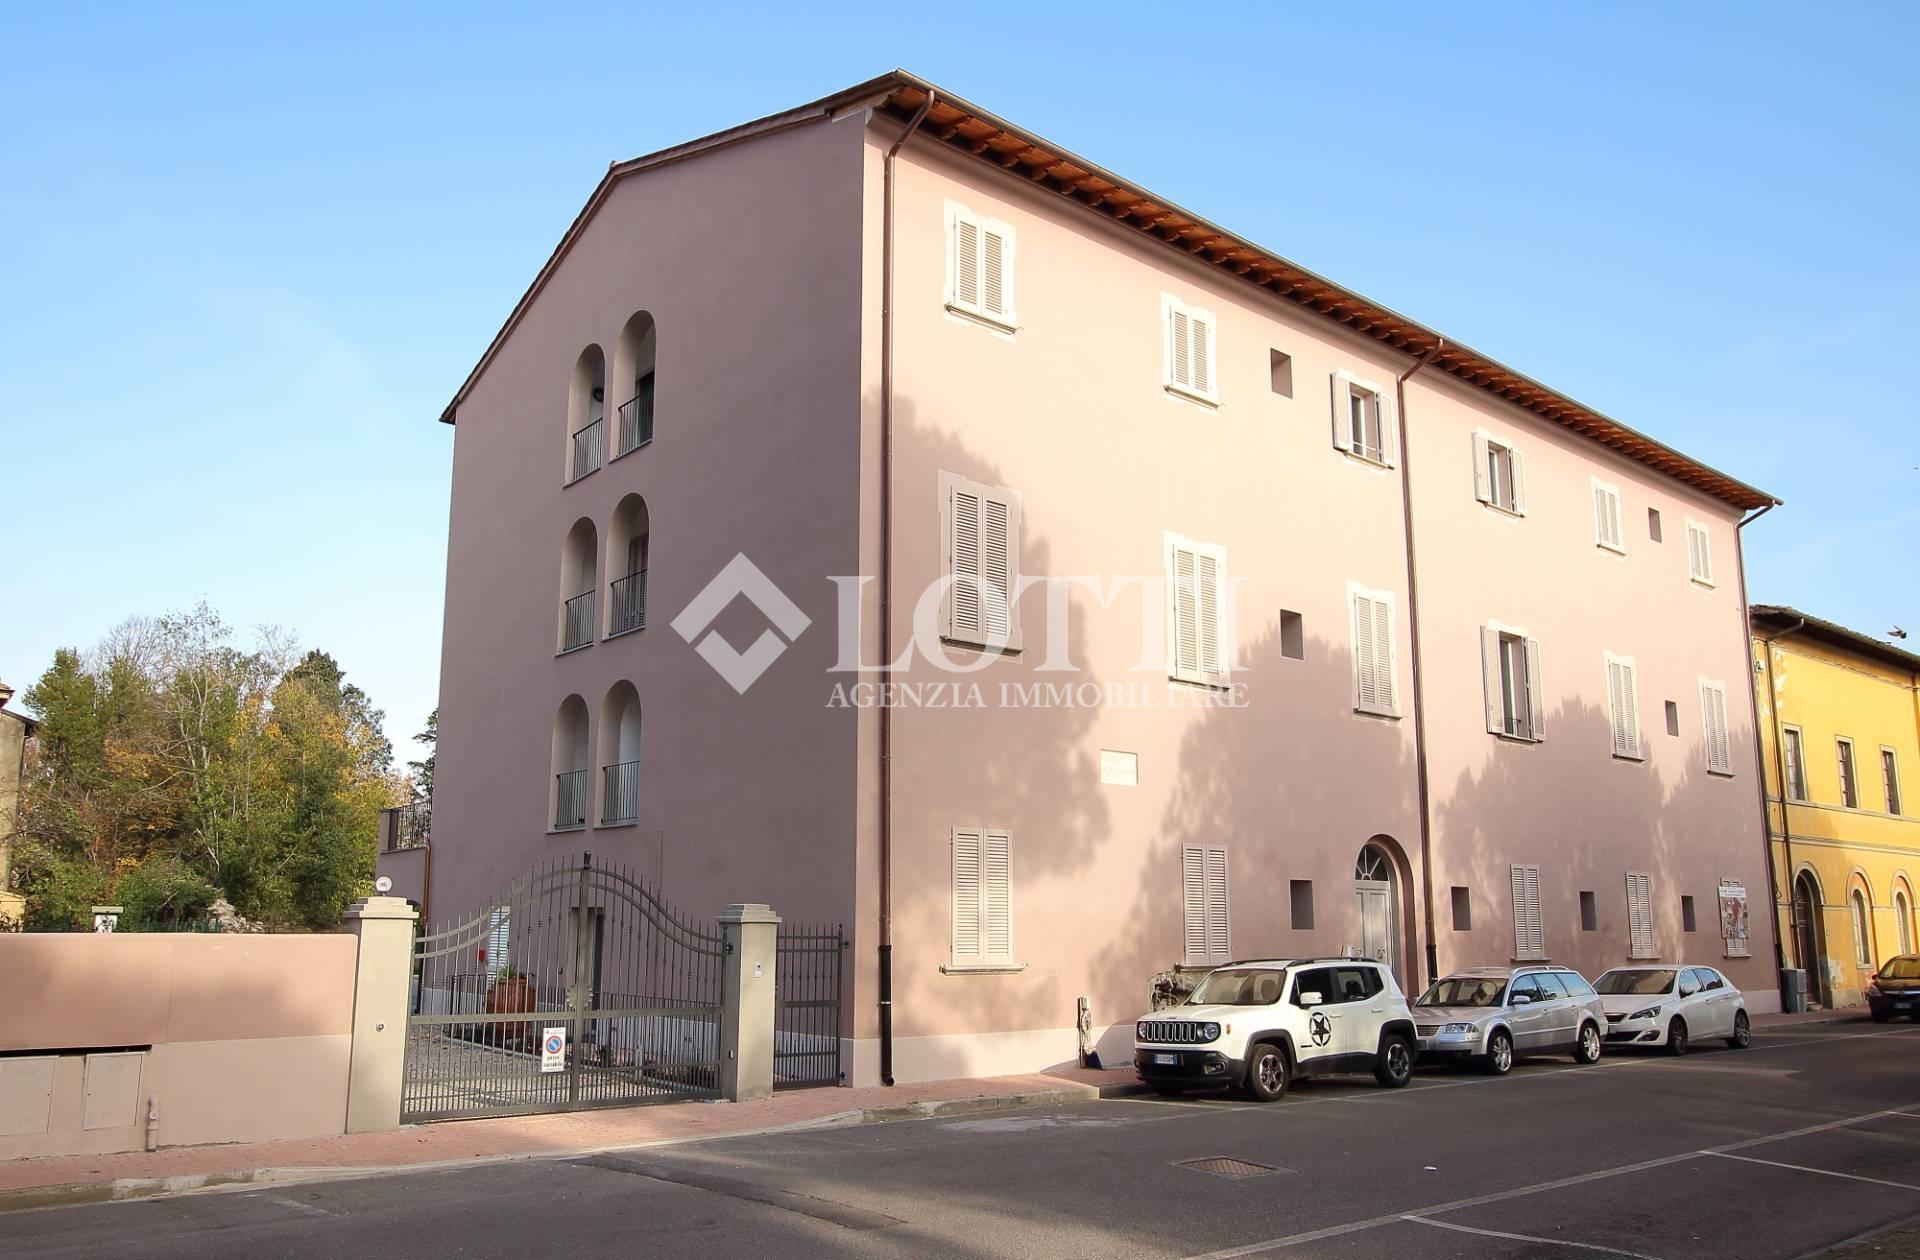 Office for sale in Bientina (PI)